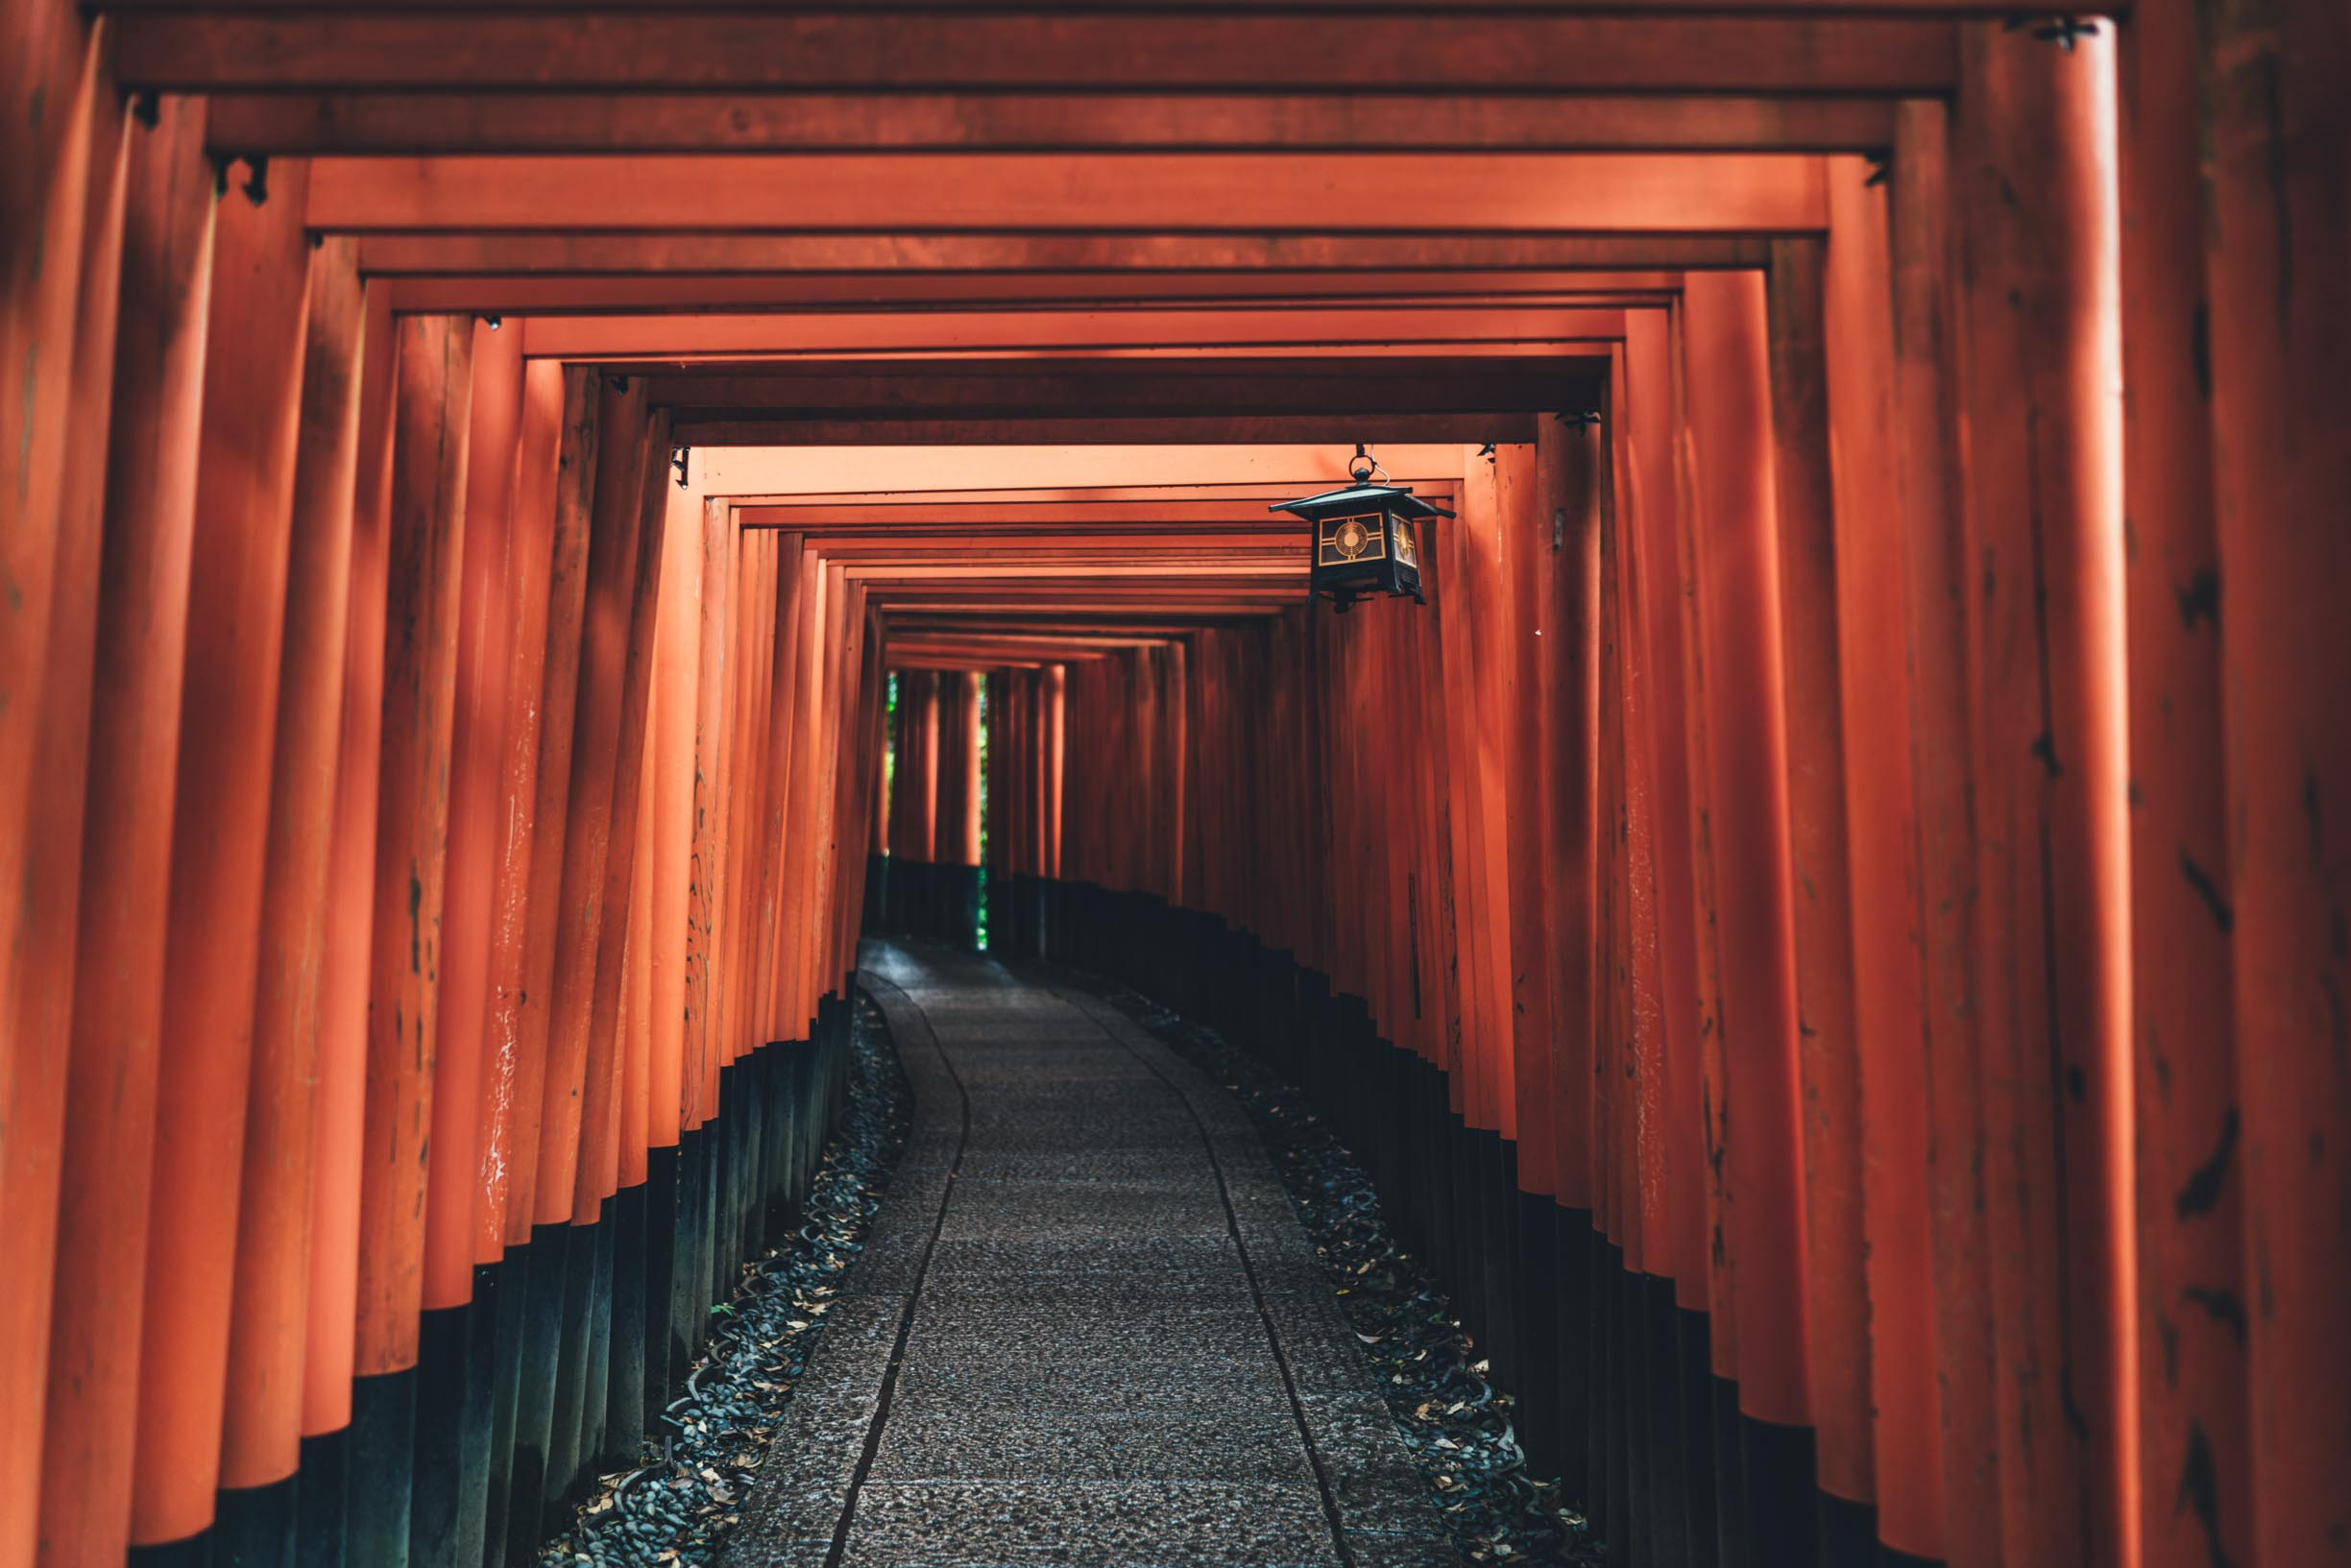 The 10 Most Instagrammable Places in Kyoto - Fushimi Inari Taisha Shrine